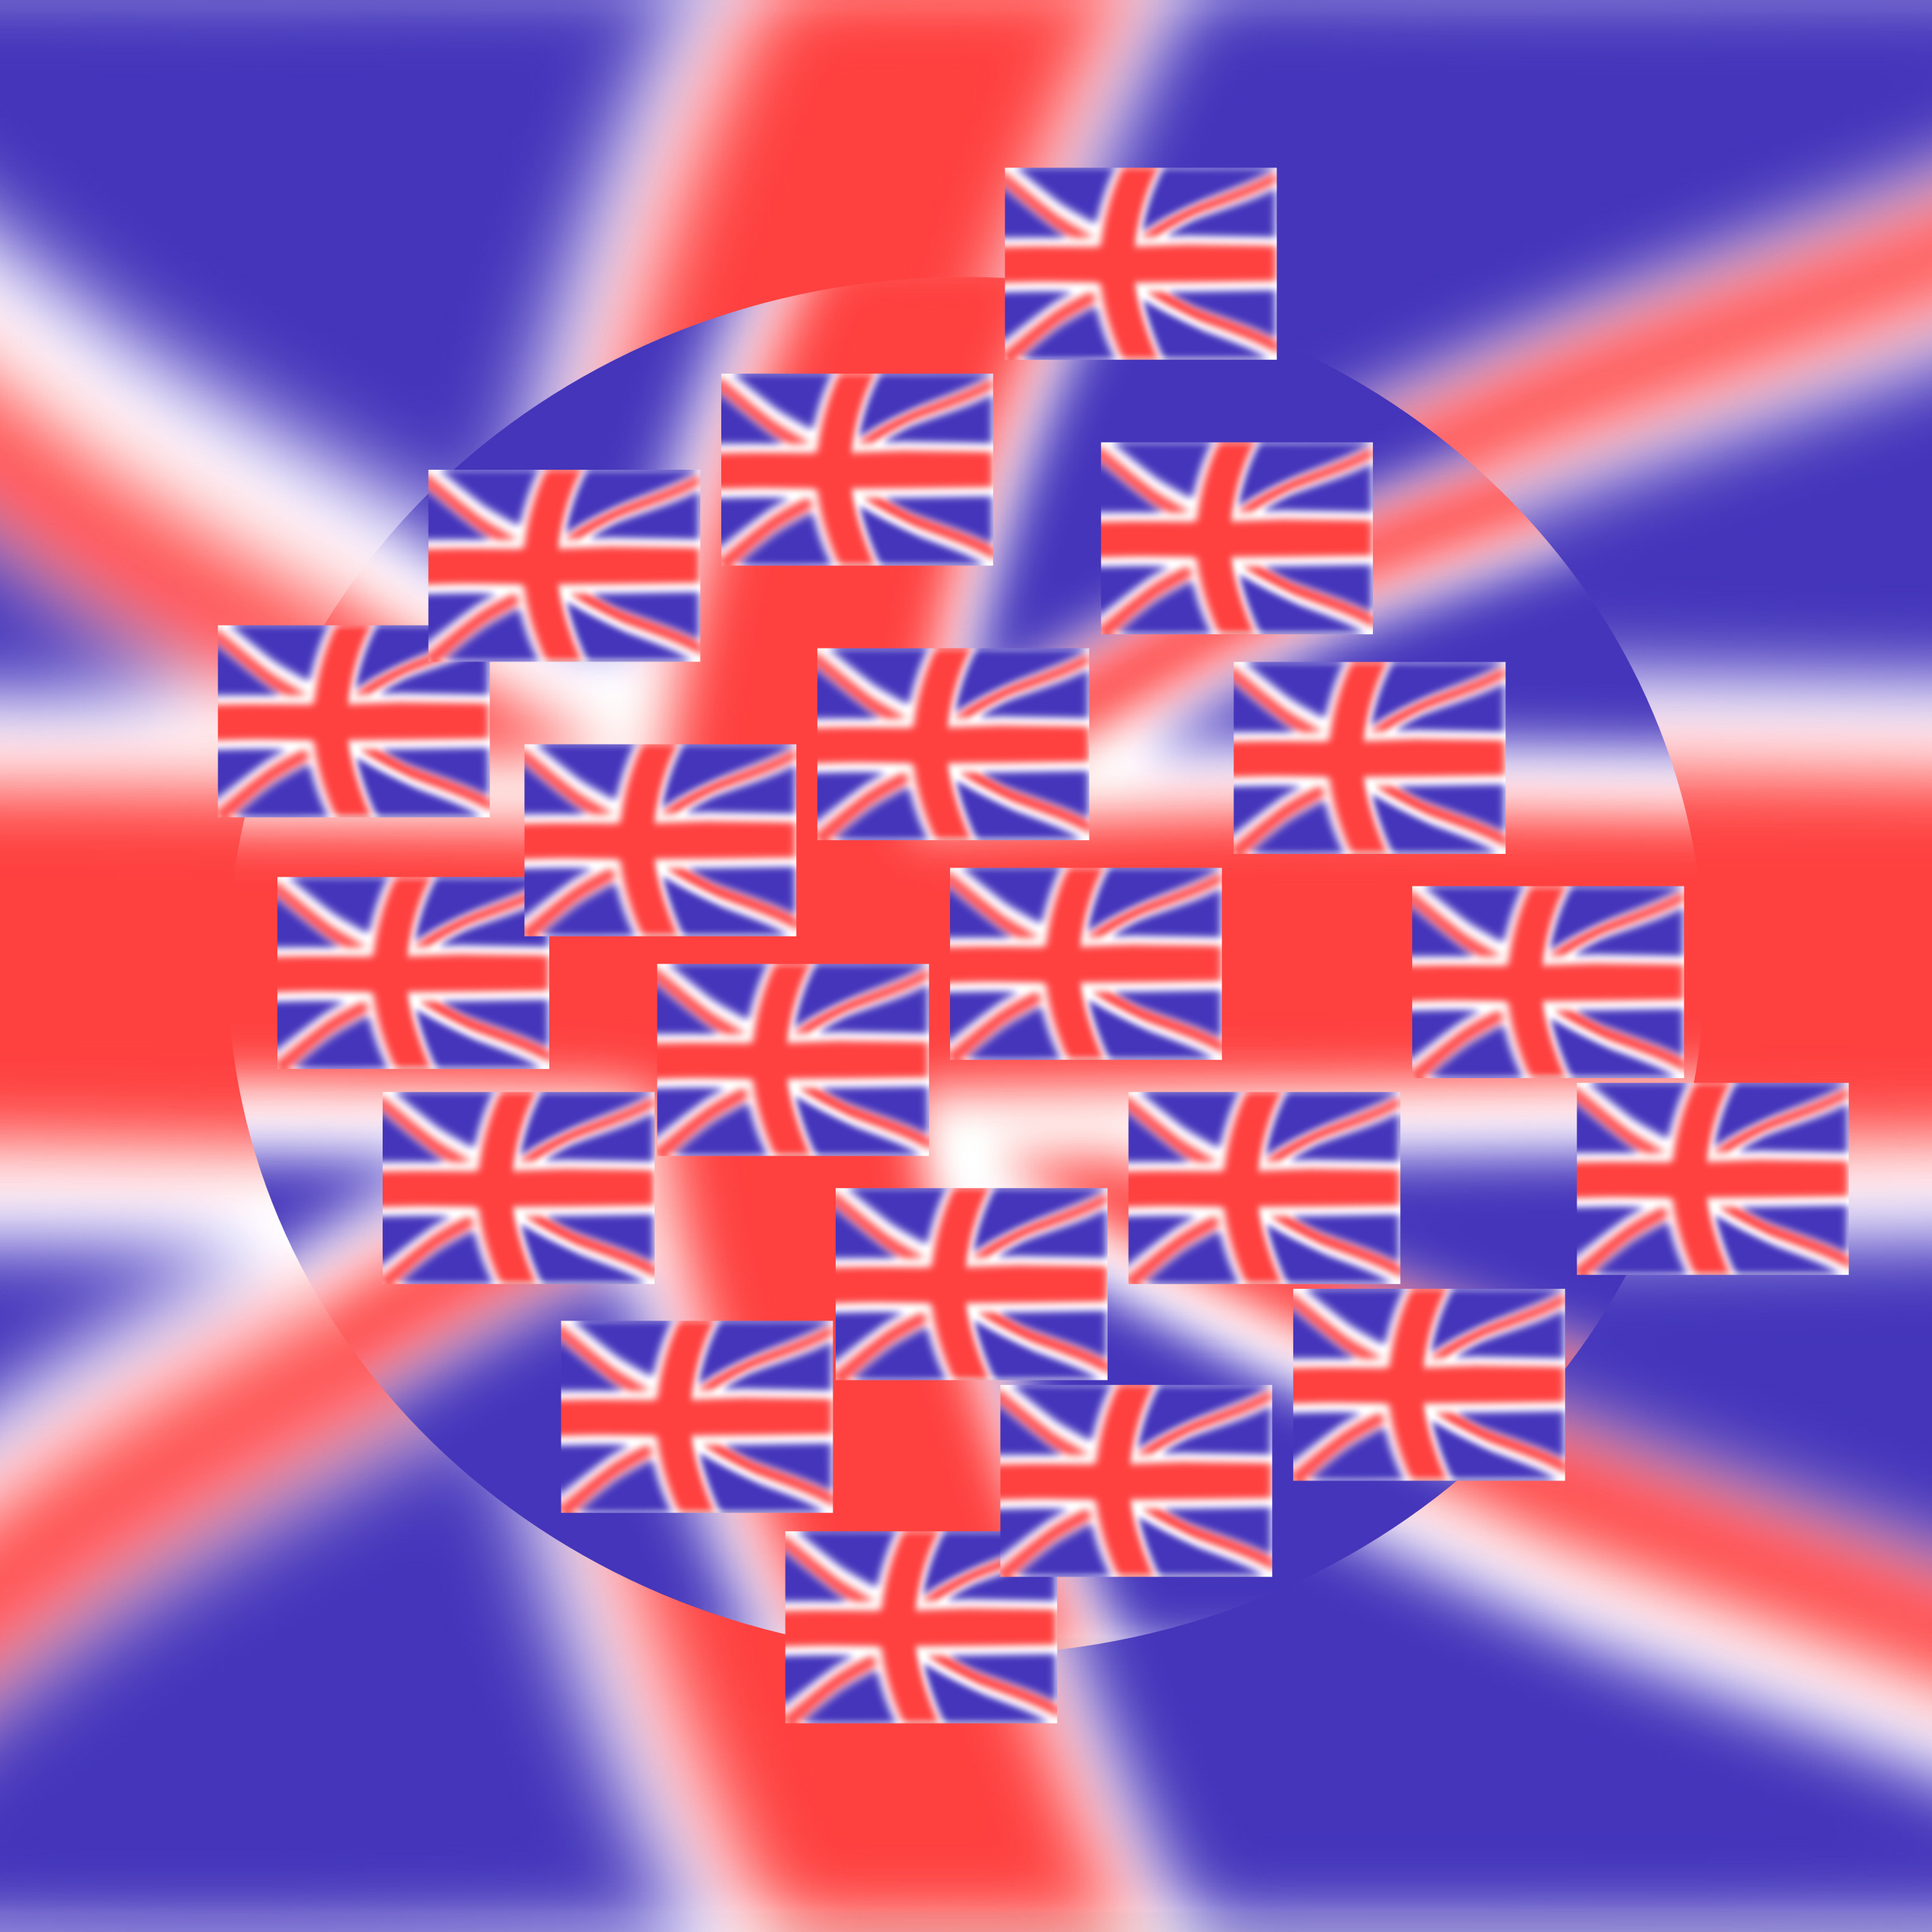 union jack for uk.jpg